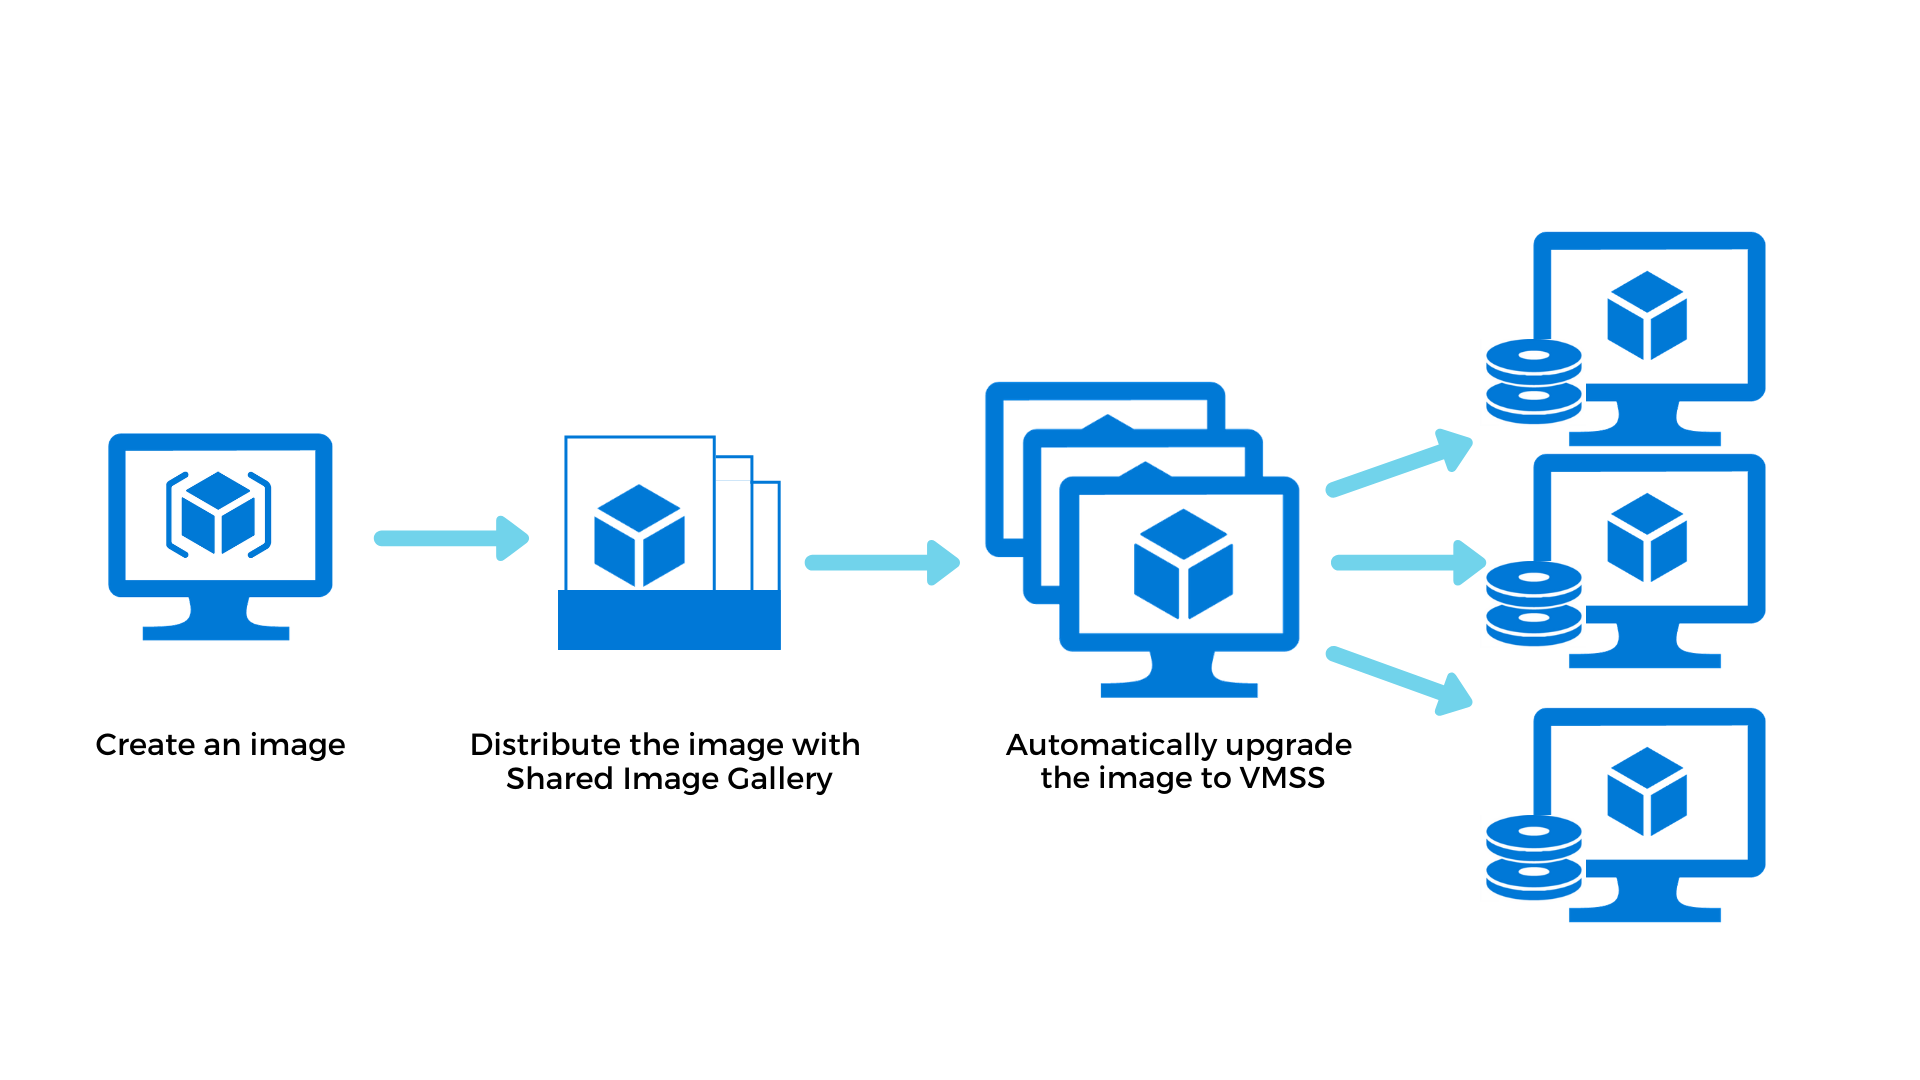 Virtual Machine Scale Sets — Automatic Image Upgrades for Custom Image